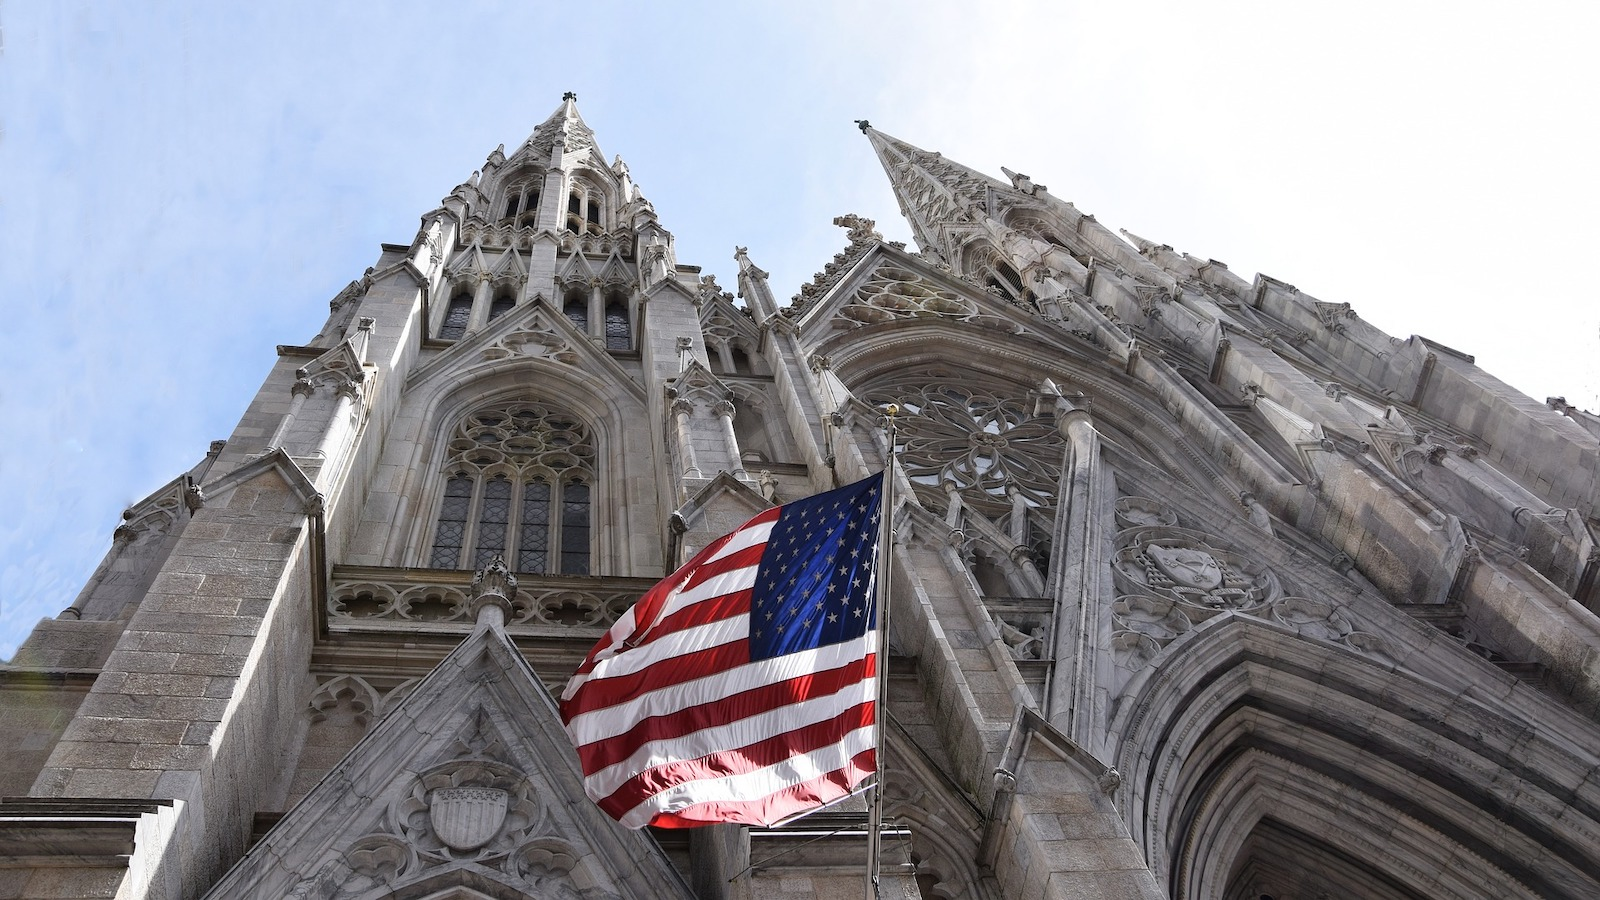 U.S. flag flies in front of St. Patrick's Cathedral in New York City